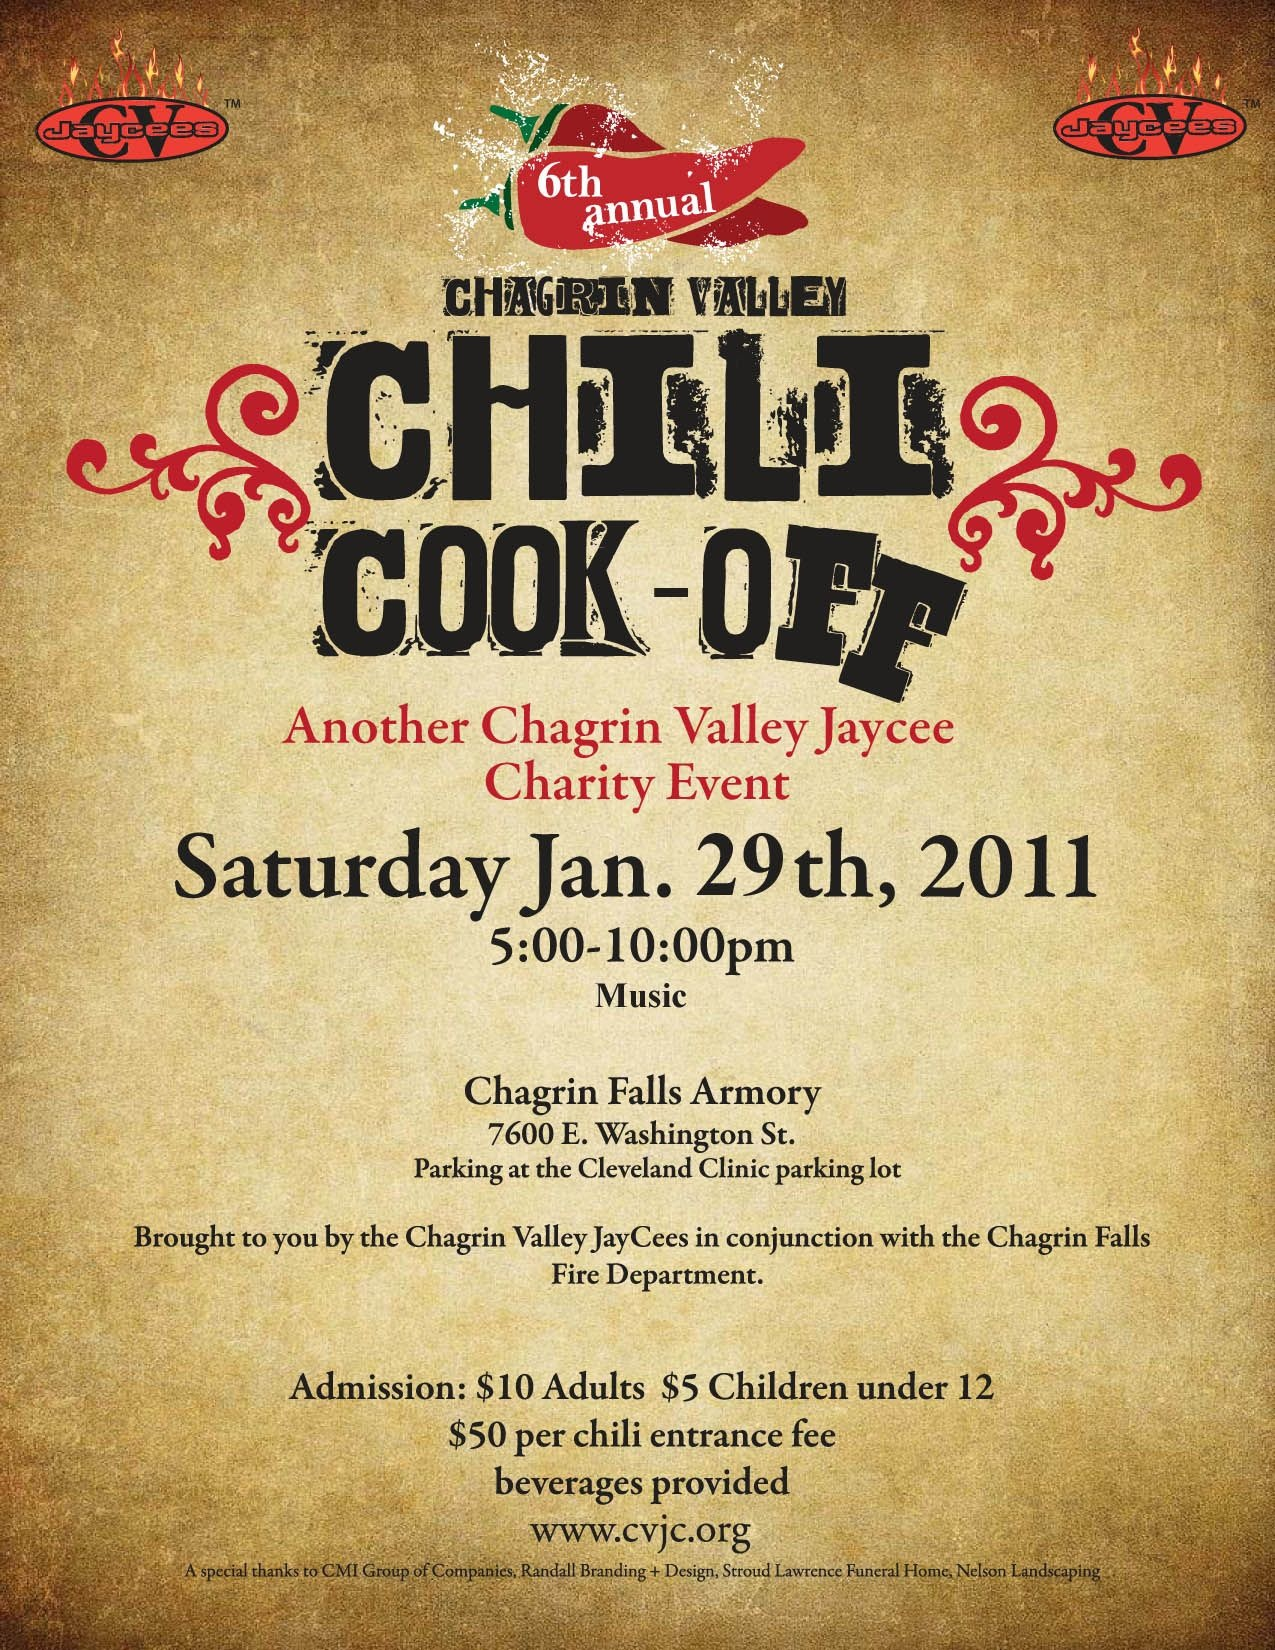 Chili Cook Off Flyer Template Free Printable - Wow - Image - Create Free Printable Flyer